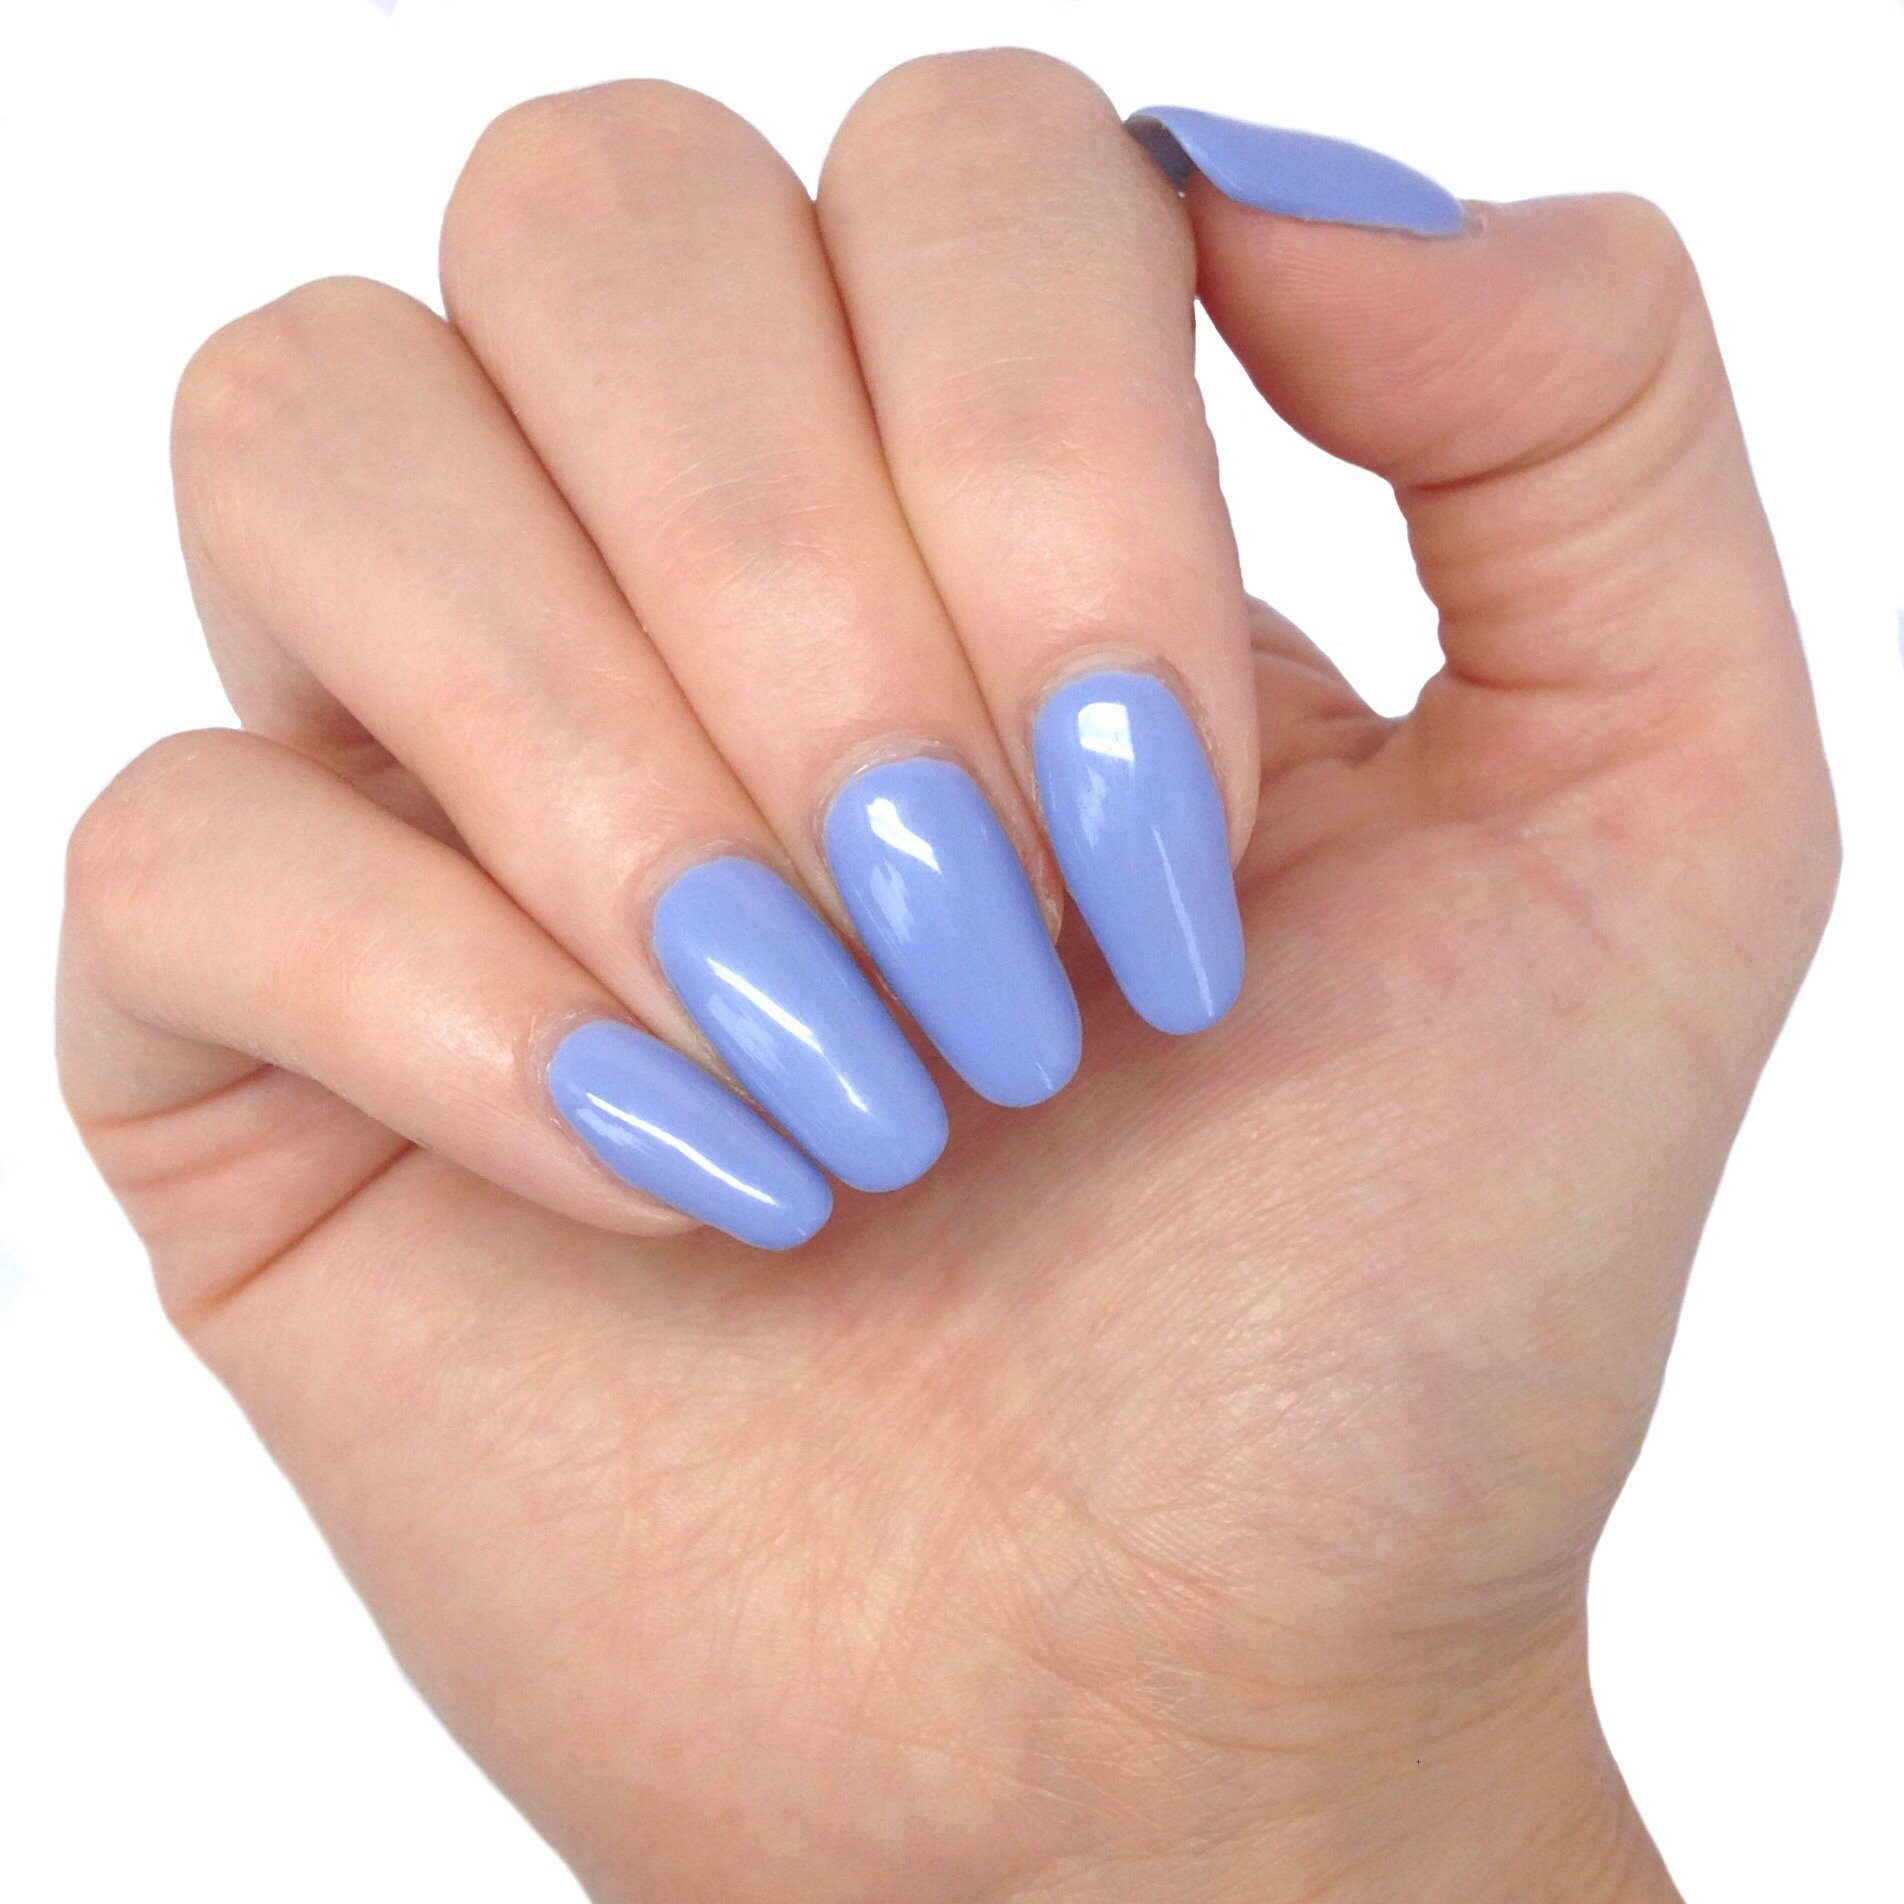 Bluesky SERENITY KA 1463 UV/LED Soak Off Gel Nail Polish Summer Light Blue - Bluesky Nail Gel Polish